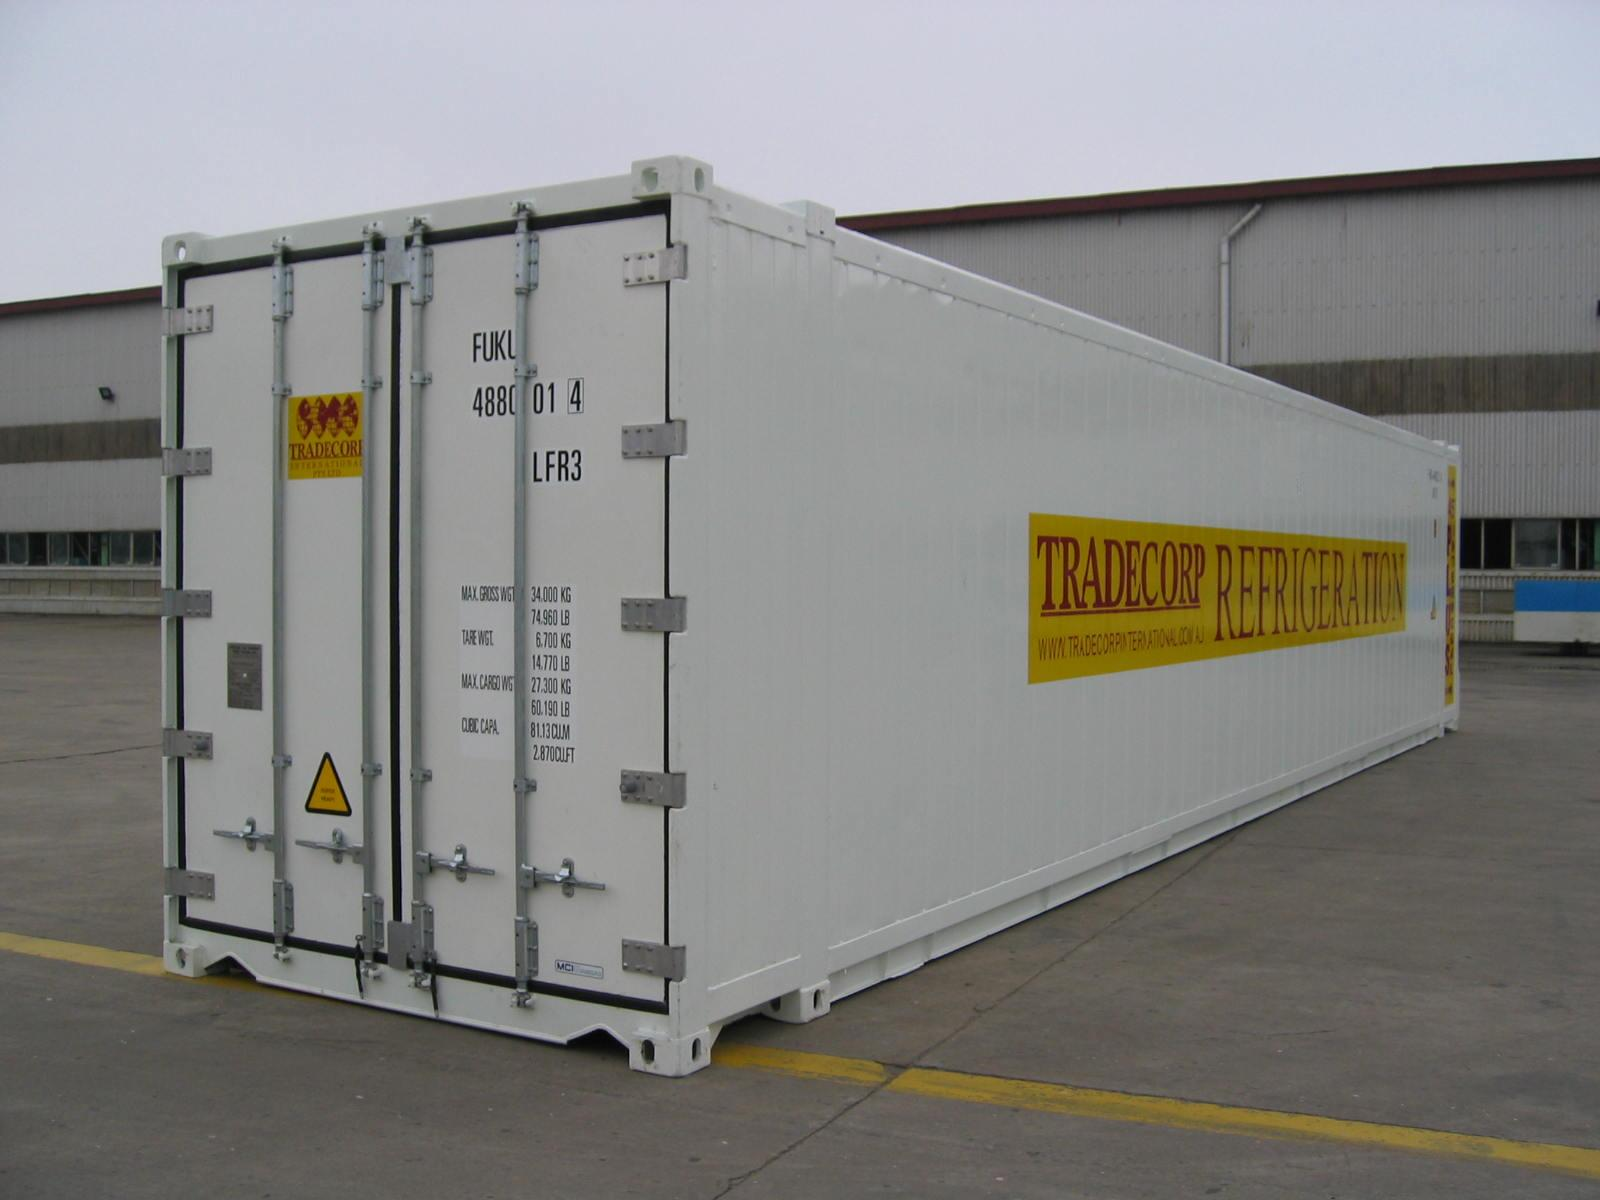 tradecorp-refrigeration-container-1025